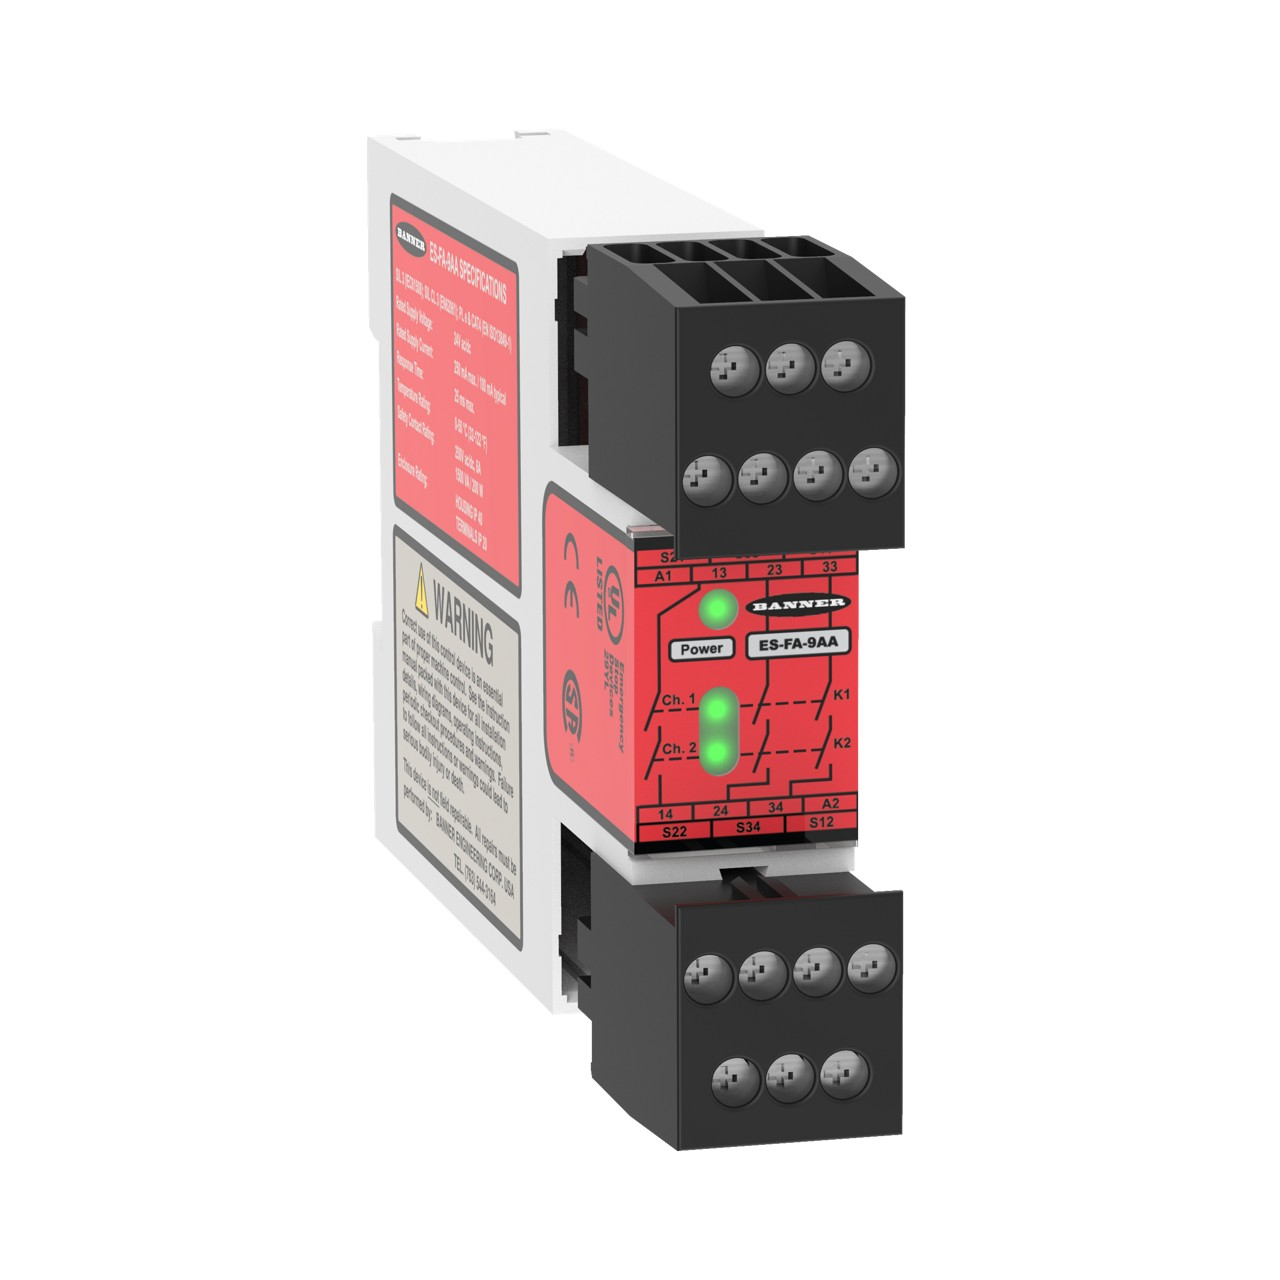 ES Series E-Stop and GM Series Guard Monitoring Safety ... on